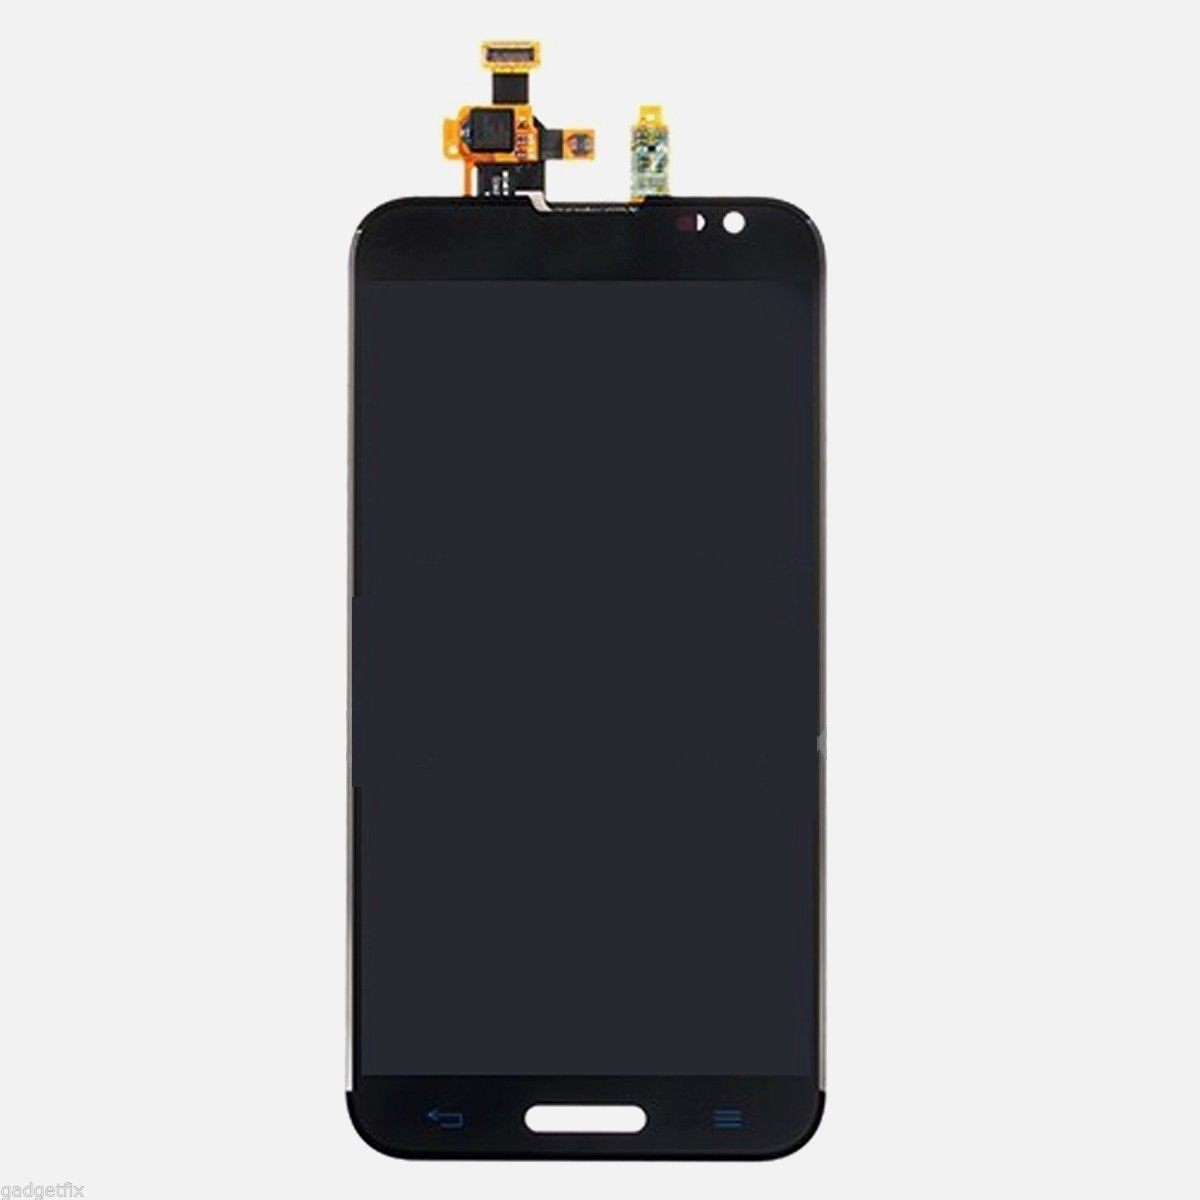 Brand New OEM LG Optimus G Pro E980 LCD Display + Touch Digitizer Outer Glass Assembly